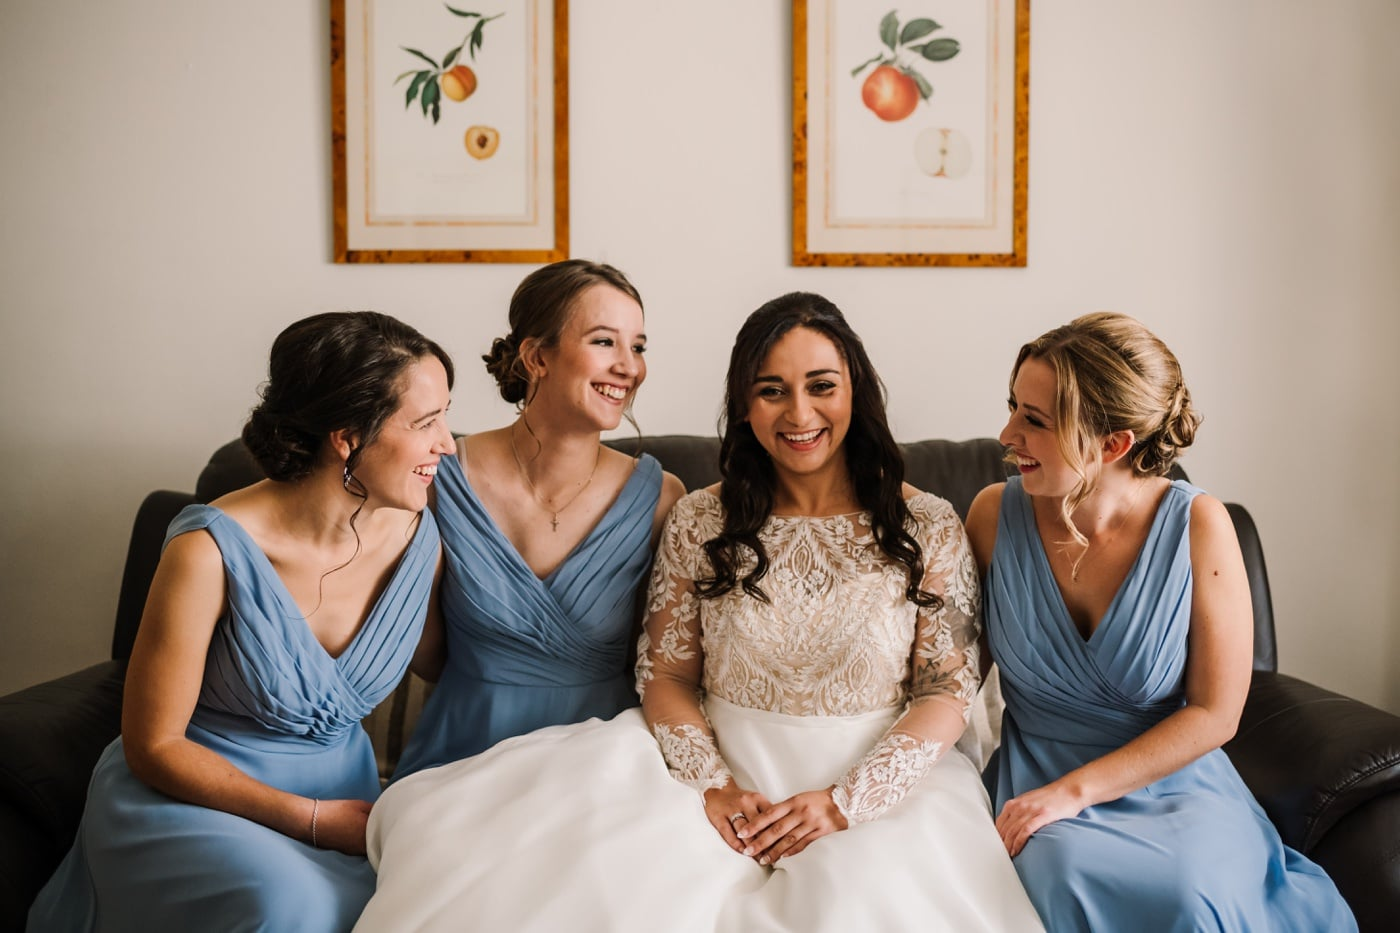 Blue bridesmaids dress in dorset